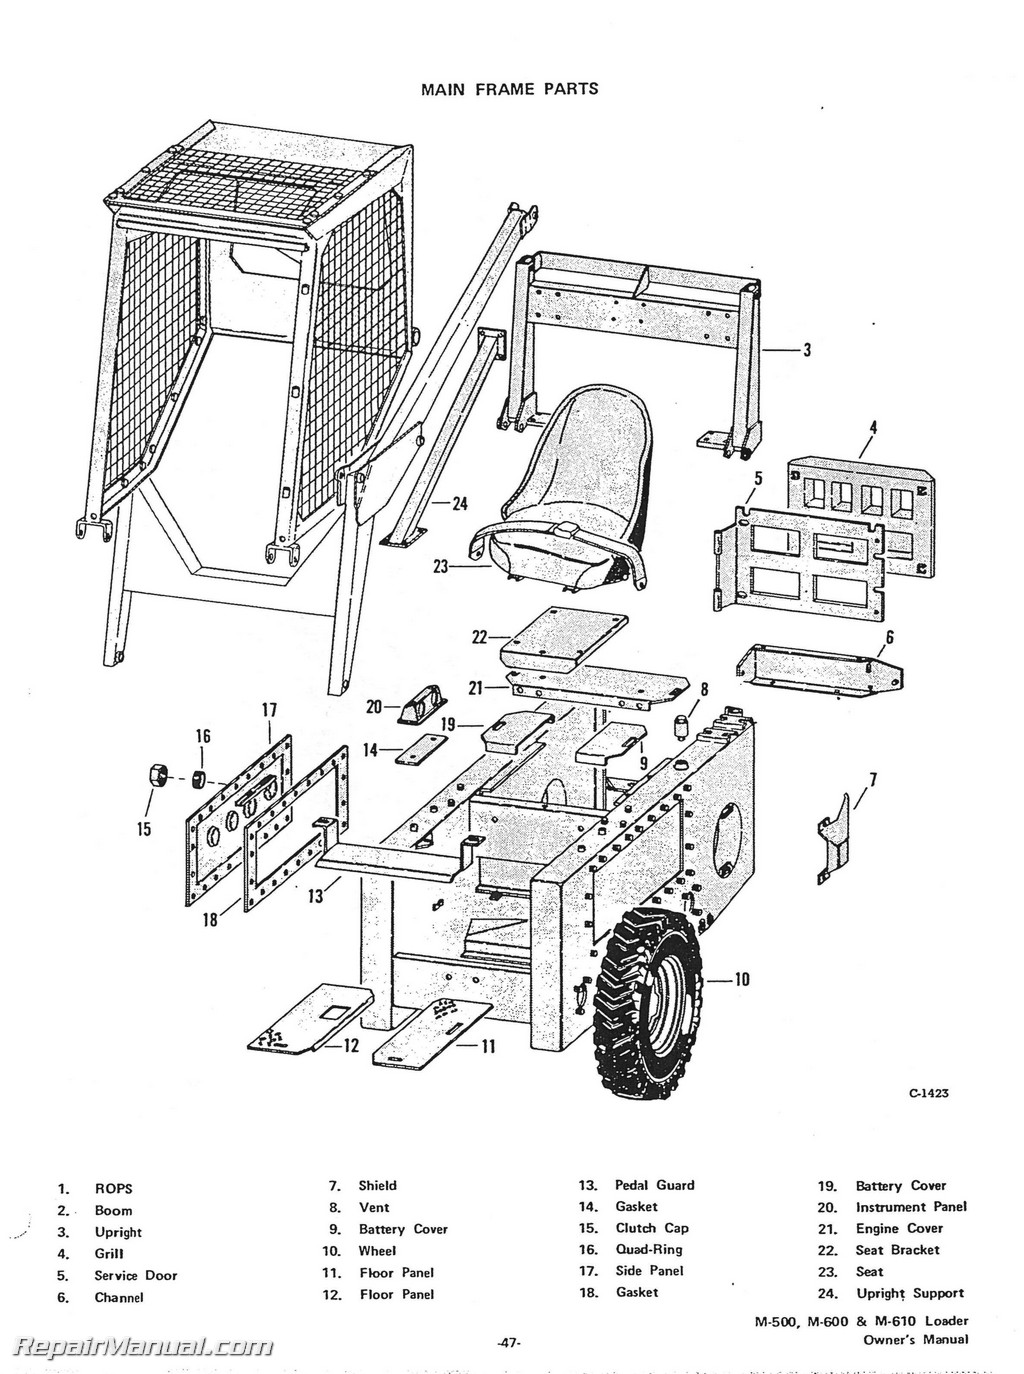 Skid Steer Case 1845c Parts Diagram. Images. Auto Fuse Box